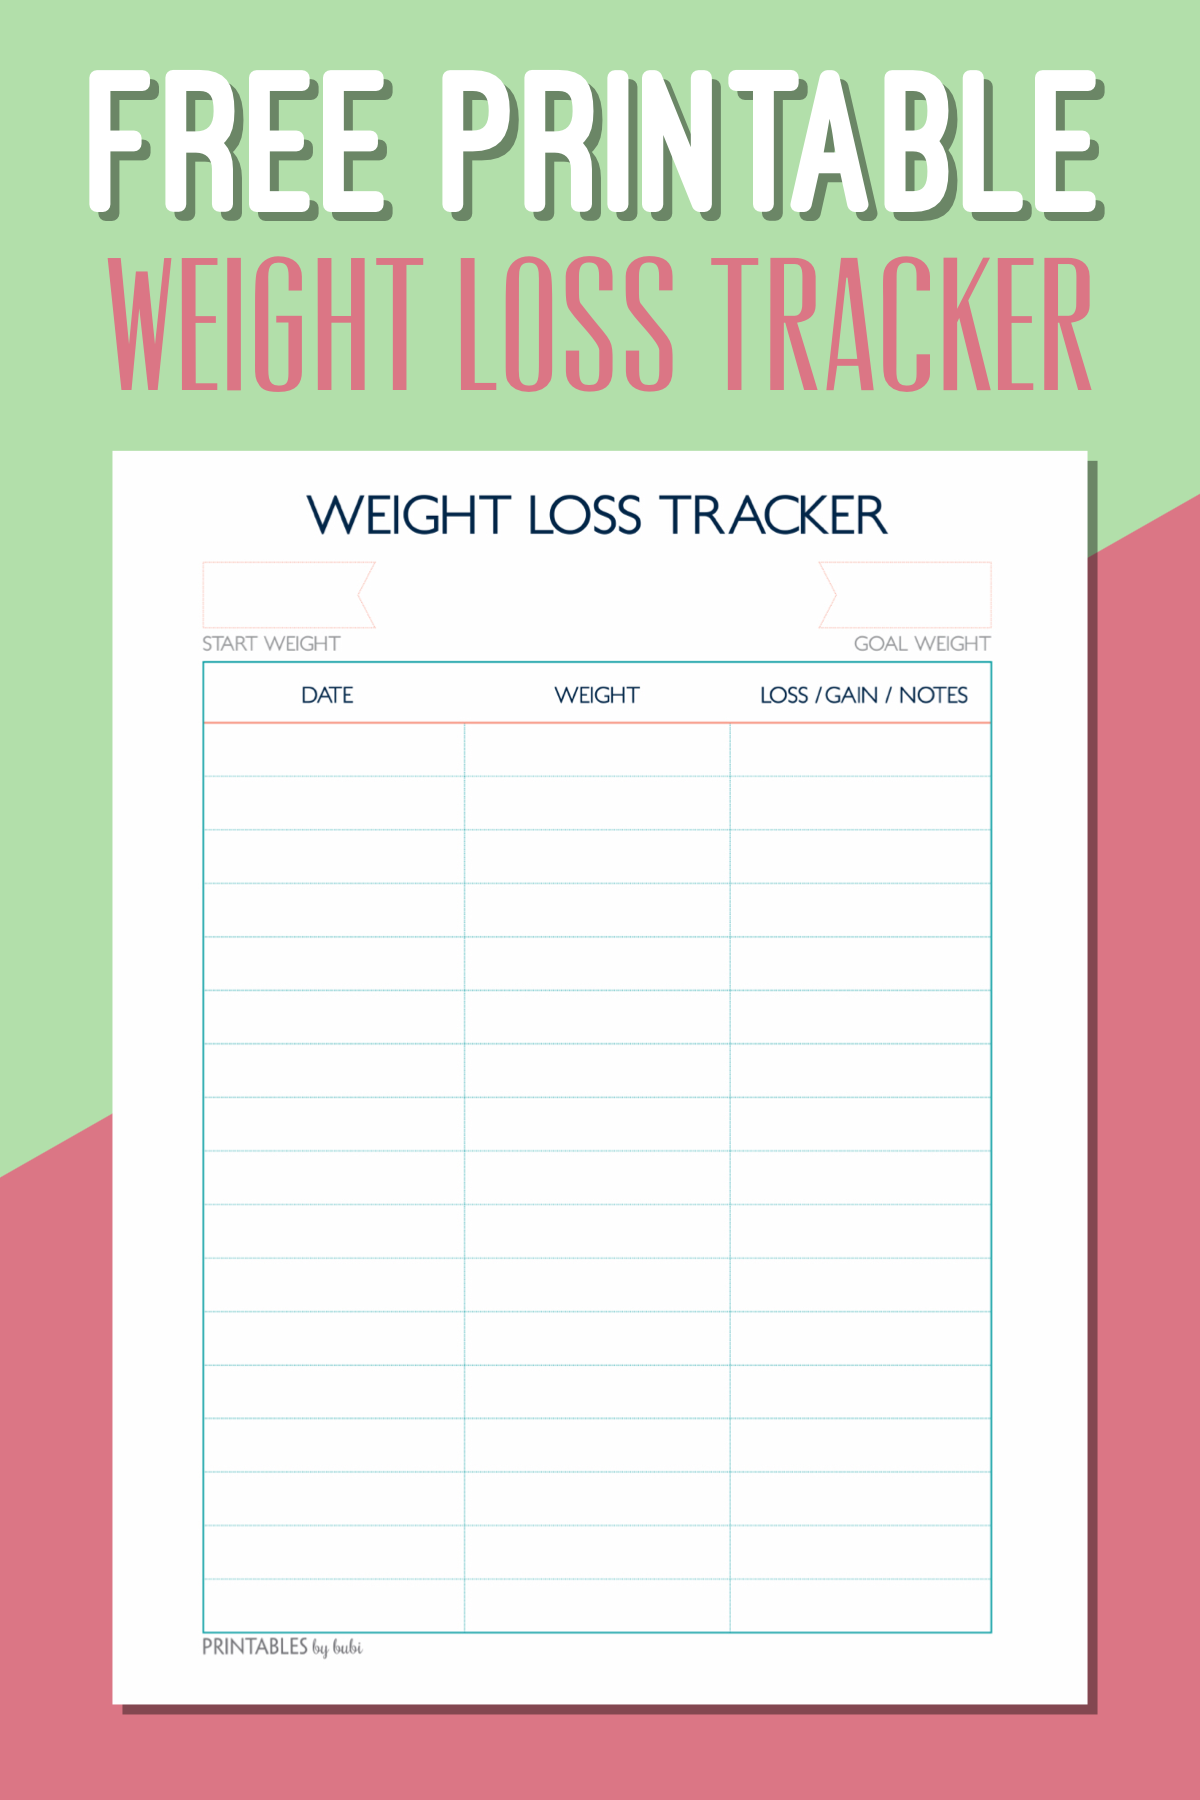 Free Printable Weight Loss Tracker Instant Download